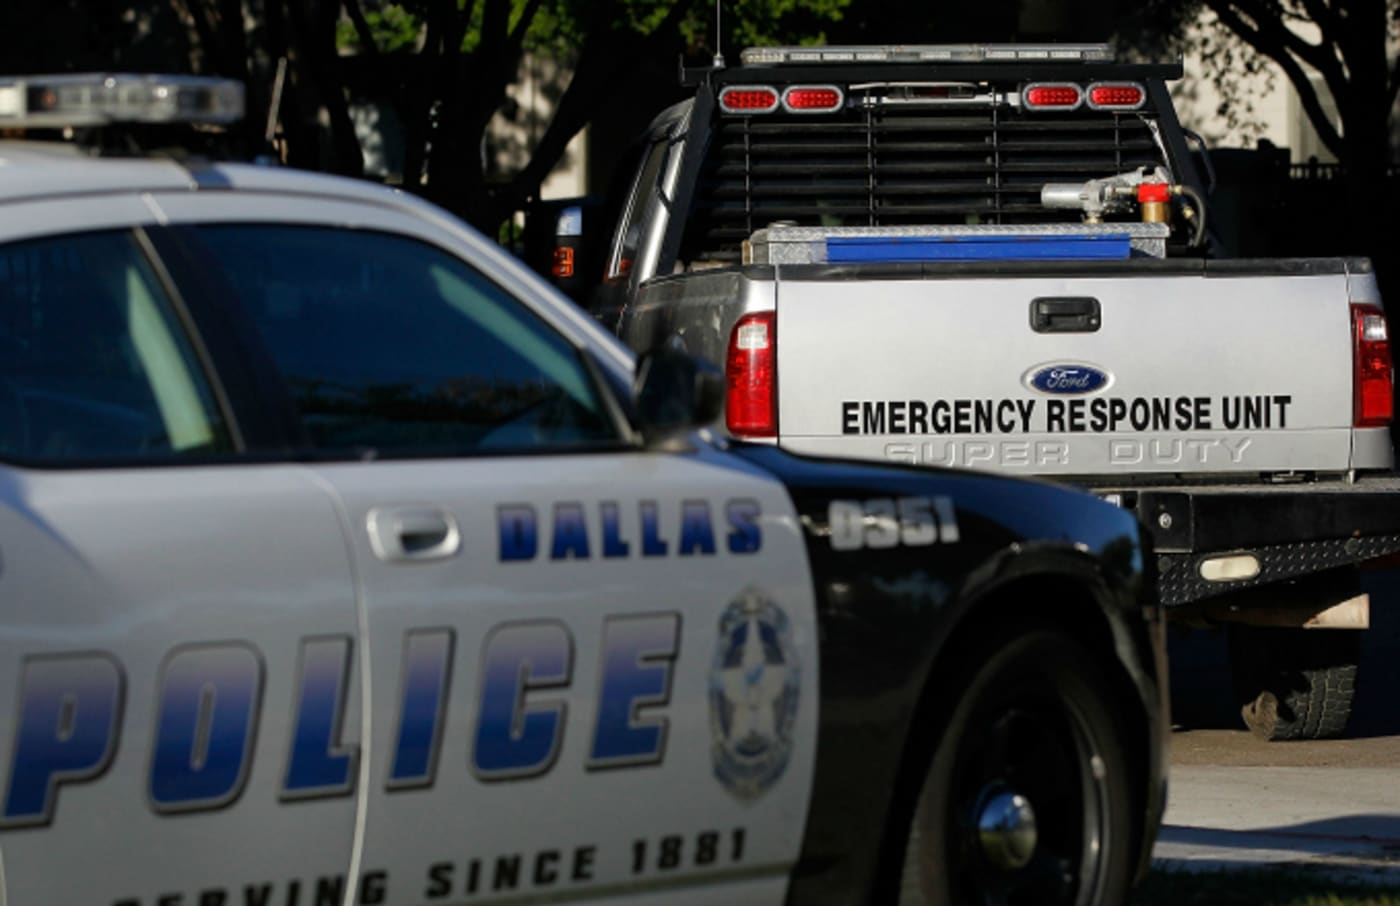 A Dallas police car and an emergency response vehicle